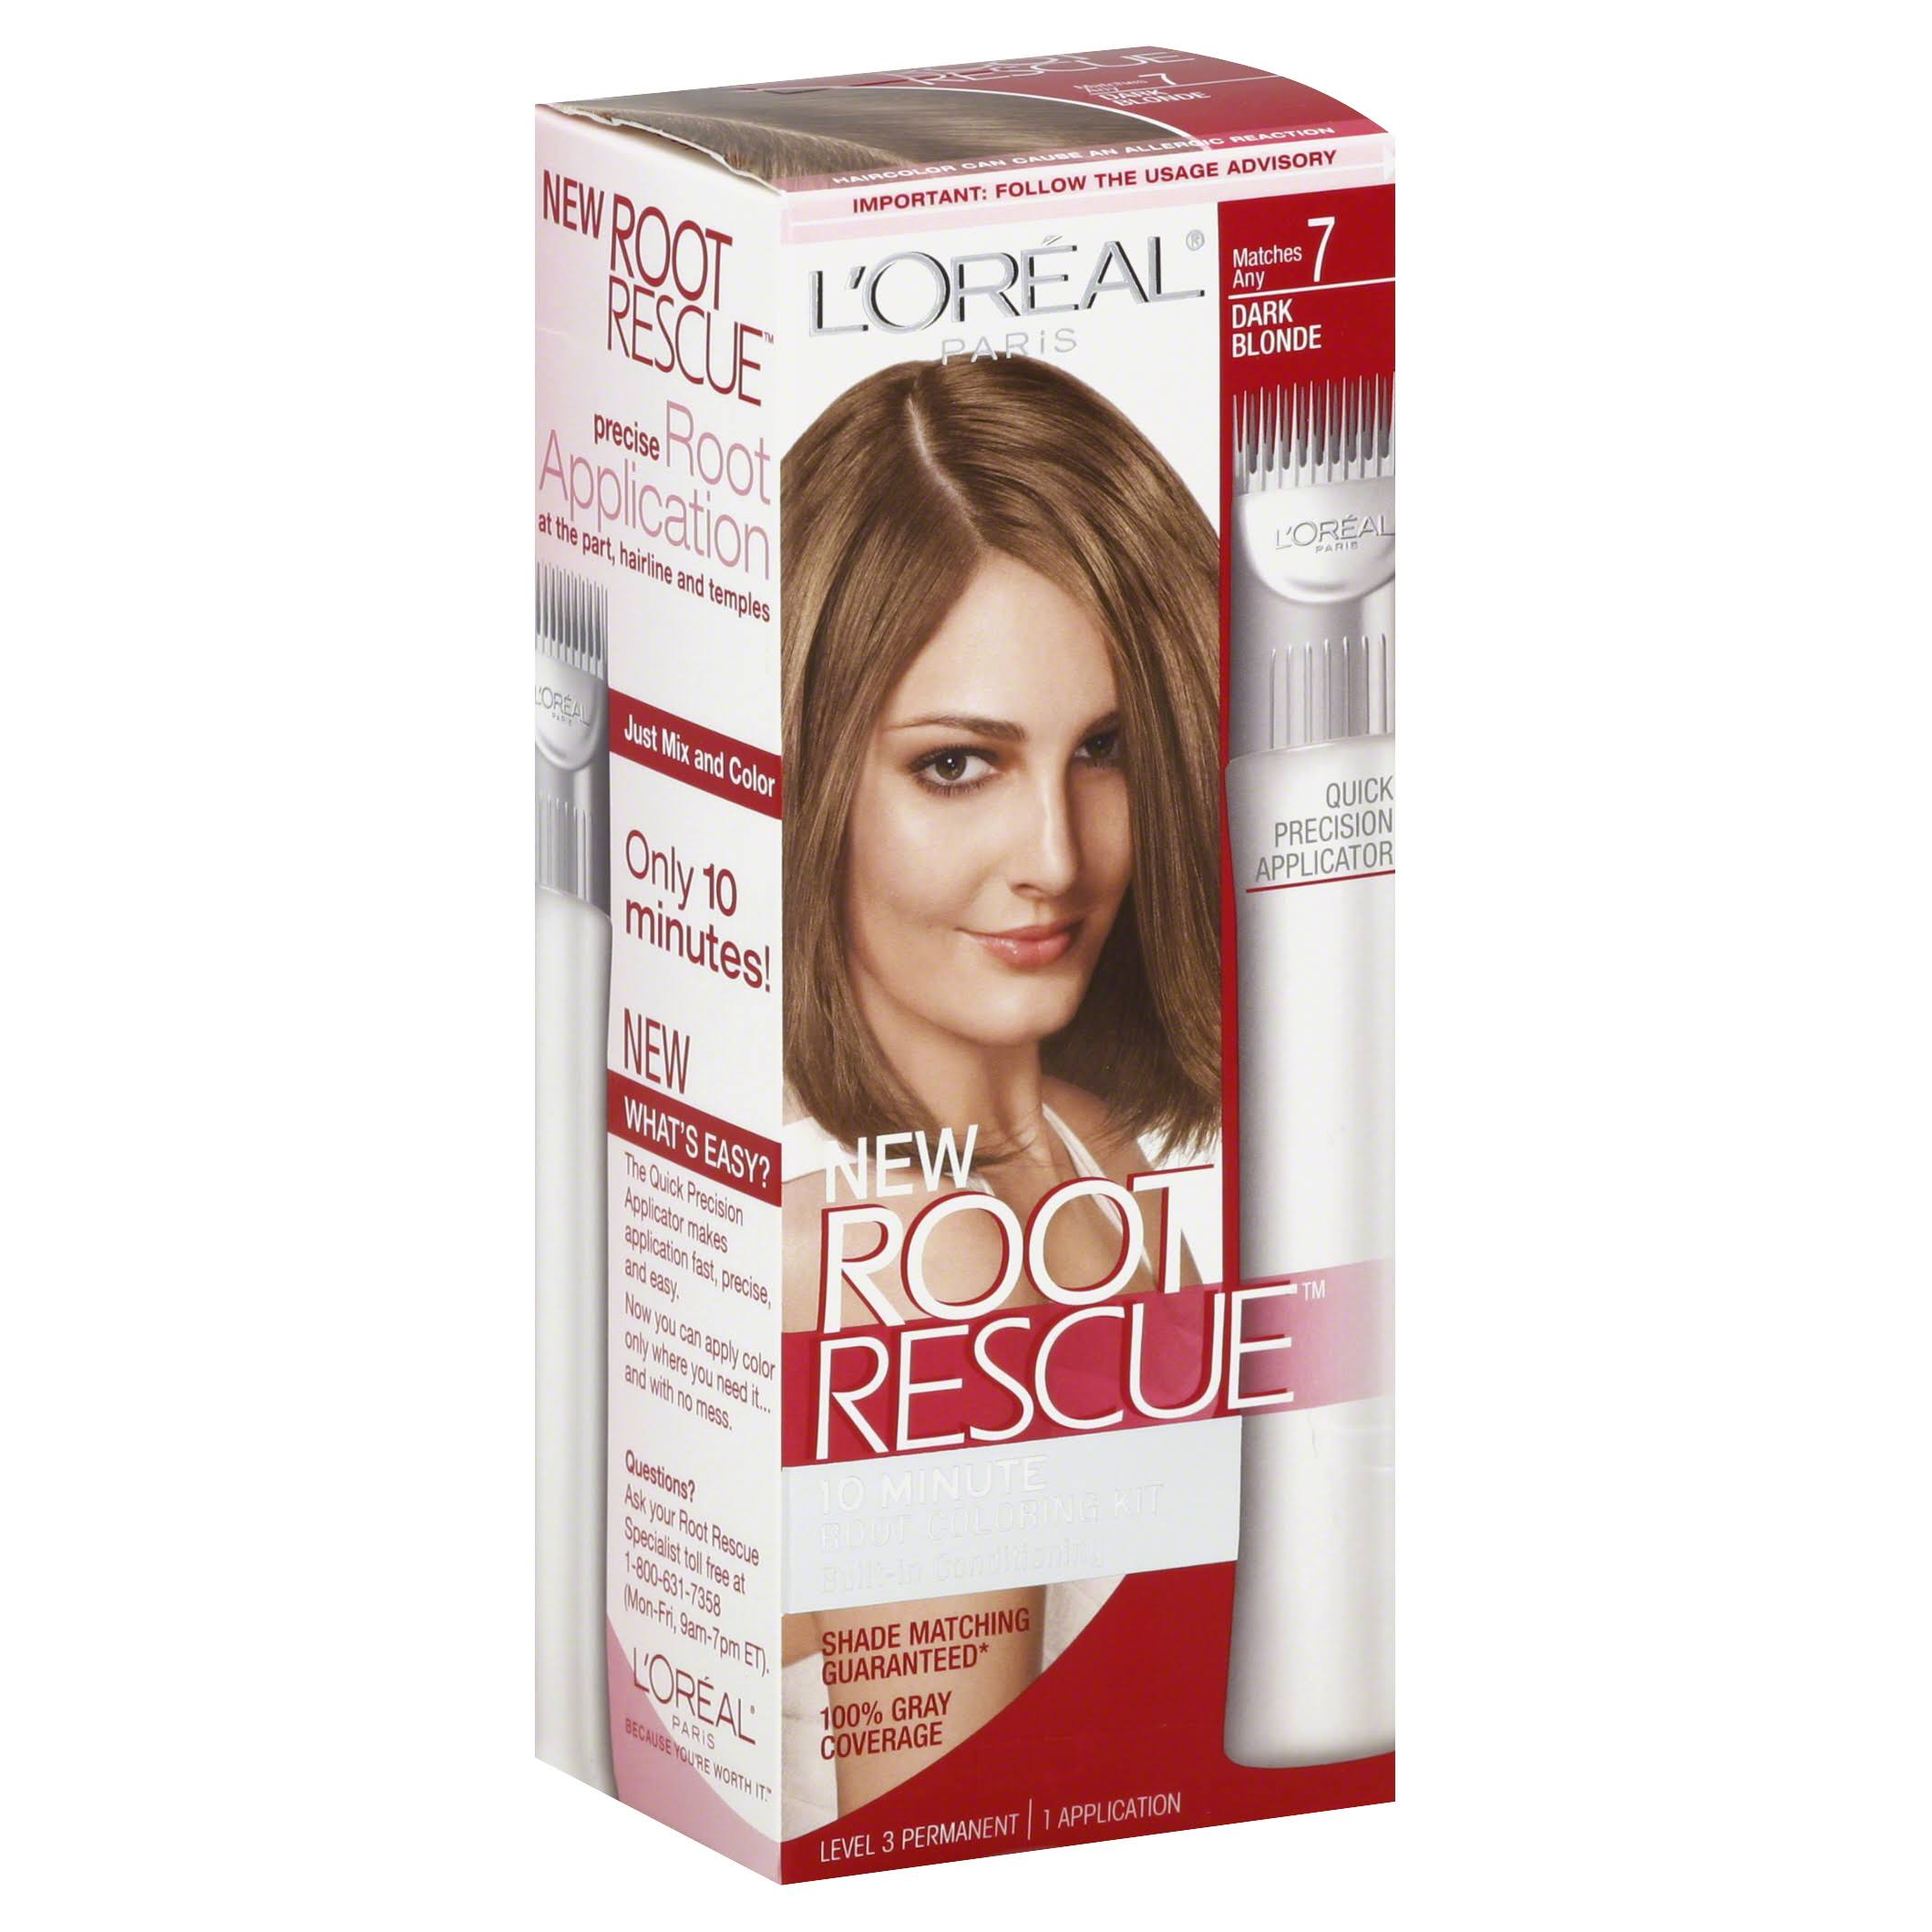 L'Oreal Paris Root Rescue Hair Coloring Kit - Dark Blonde